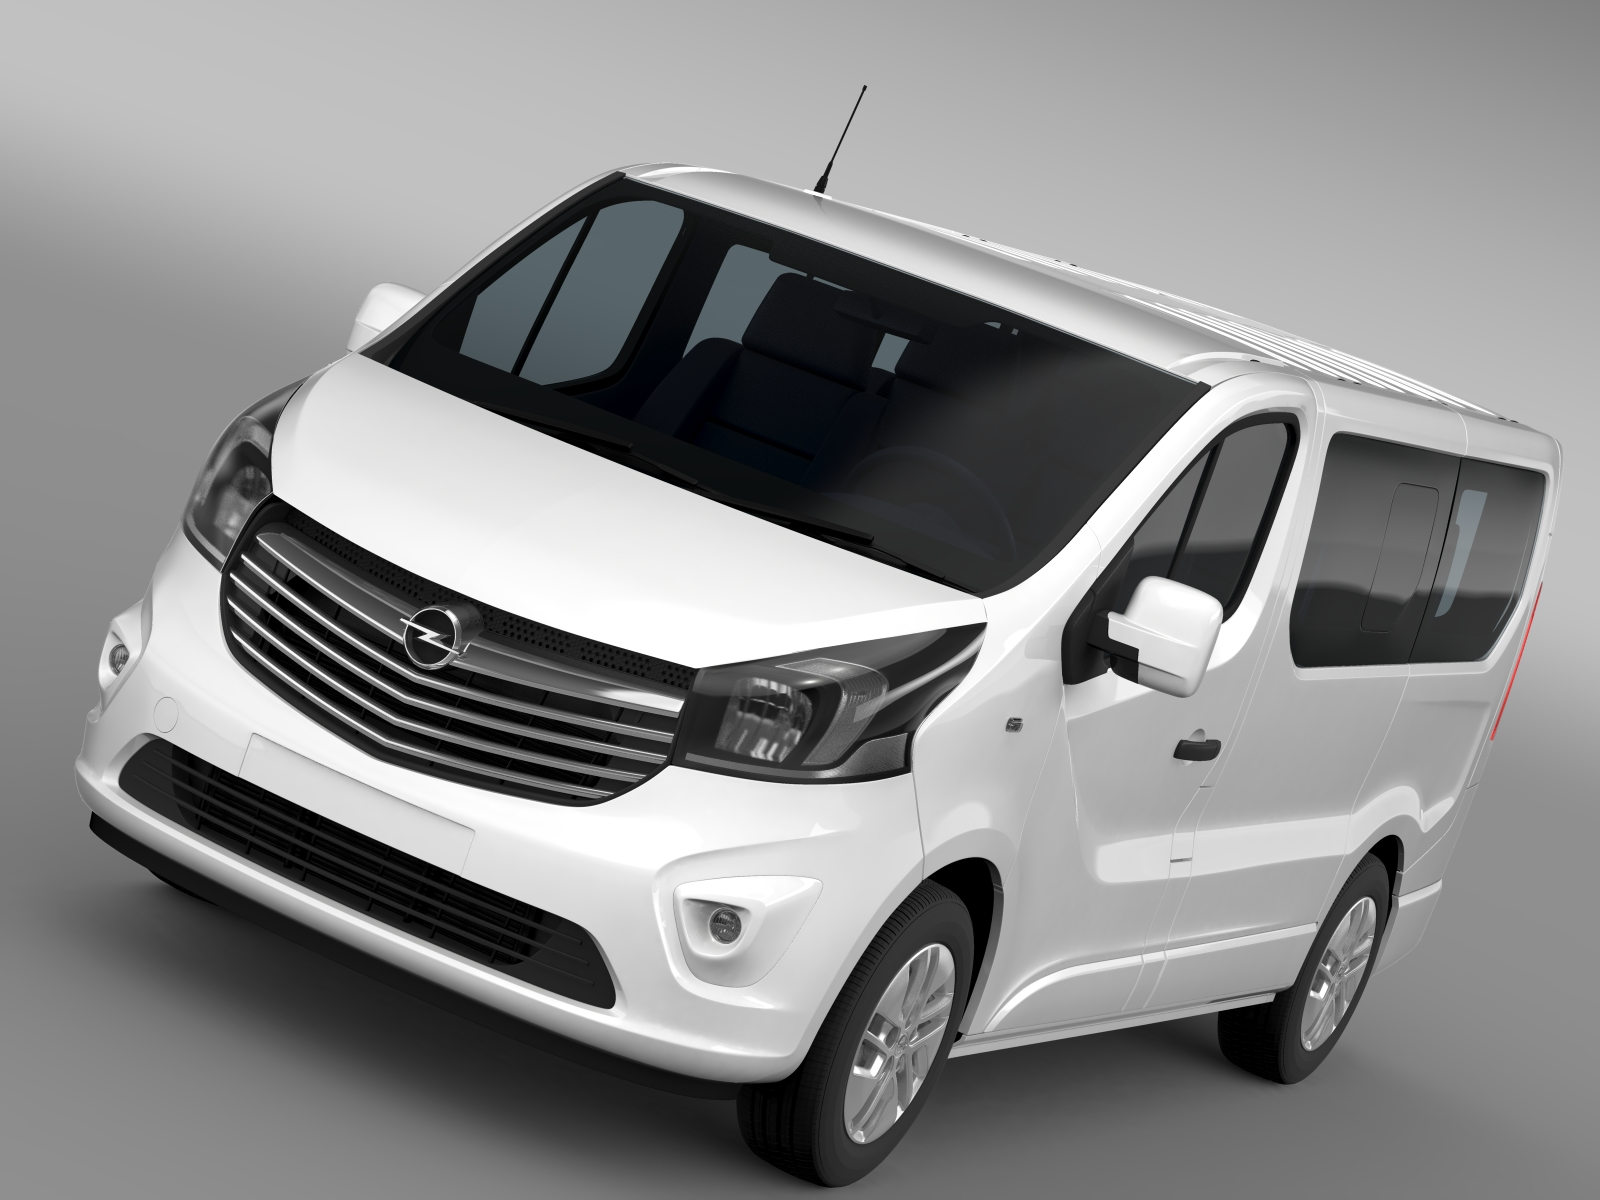 opel vivaro biturbo 2015 3d model buy opel vivaro biturbo 2015 3d model flatpyramid. Black Bedroom Furniture Sets. Home Design Ideas